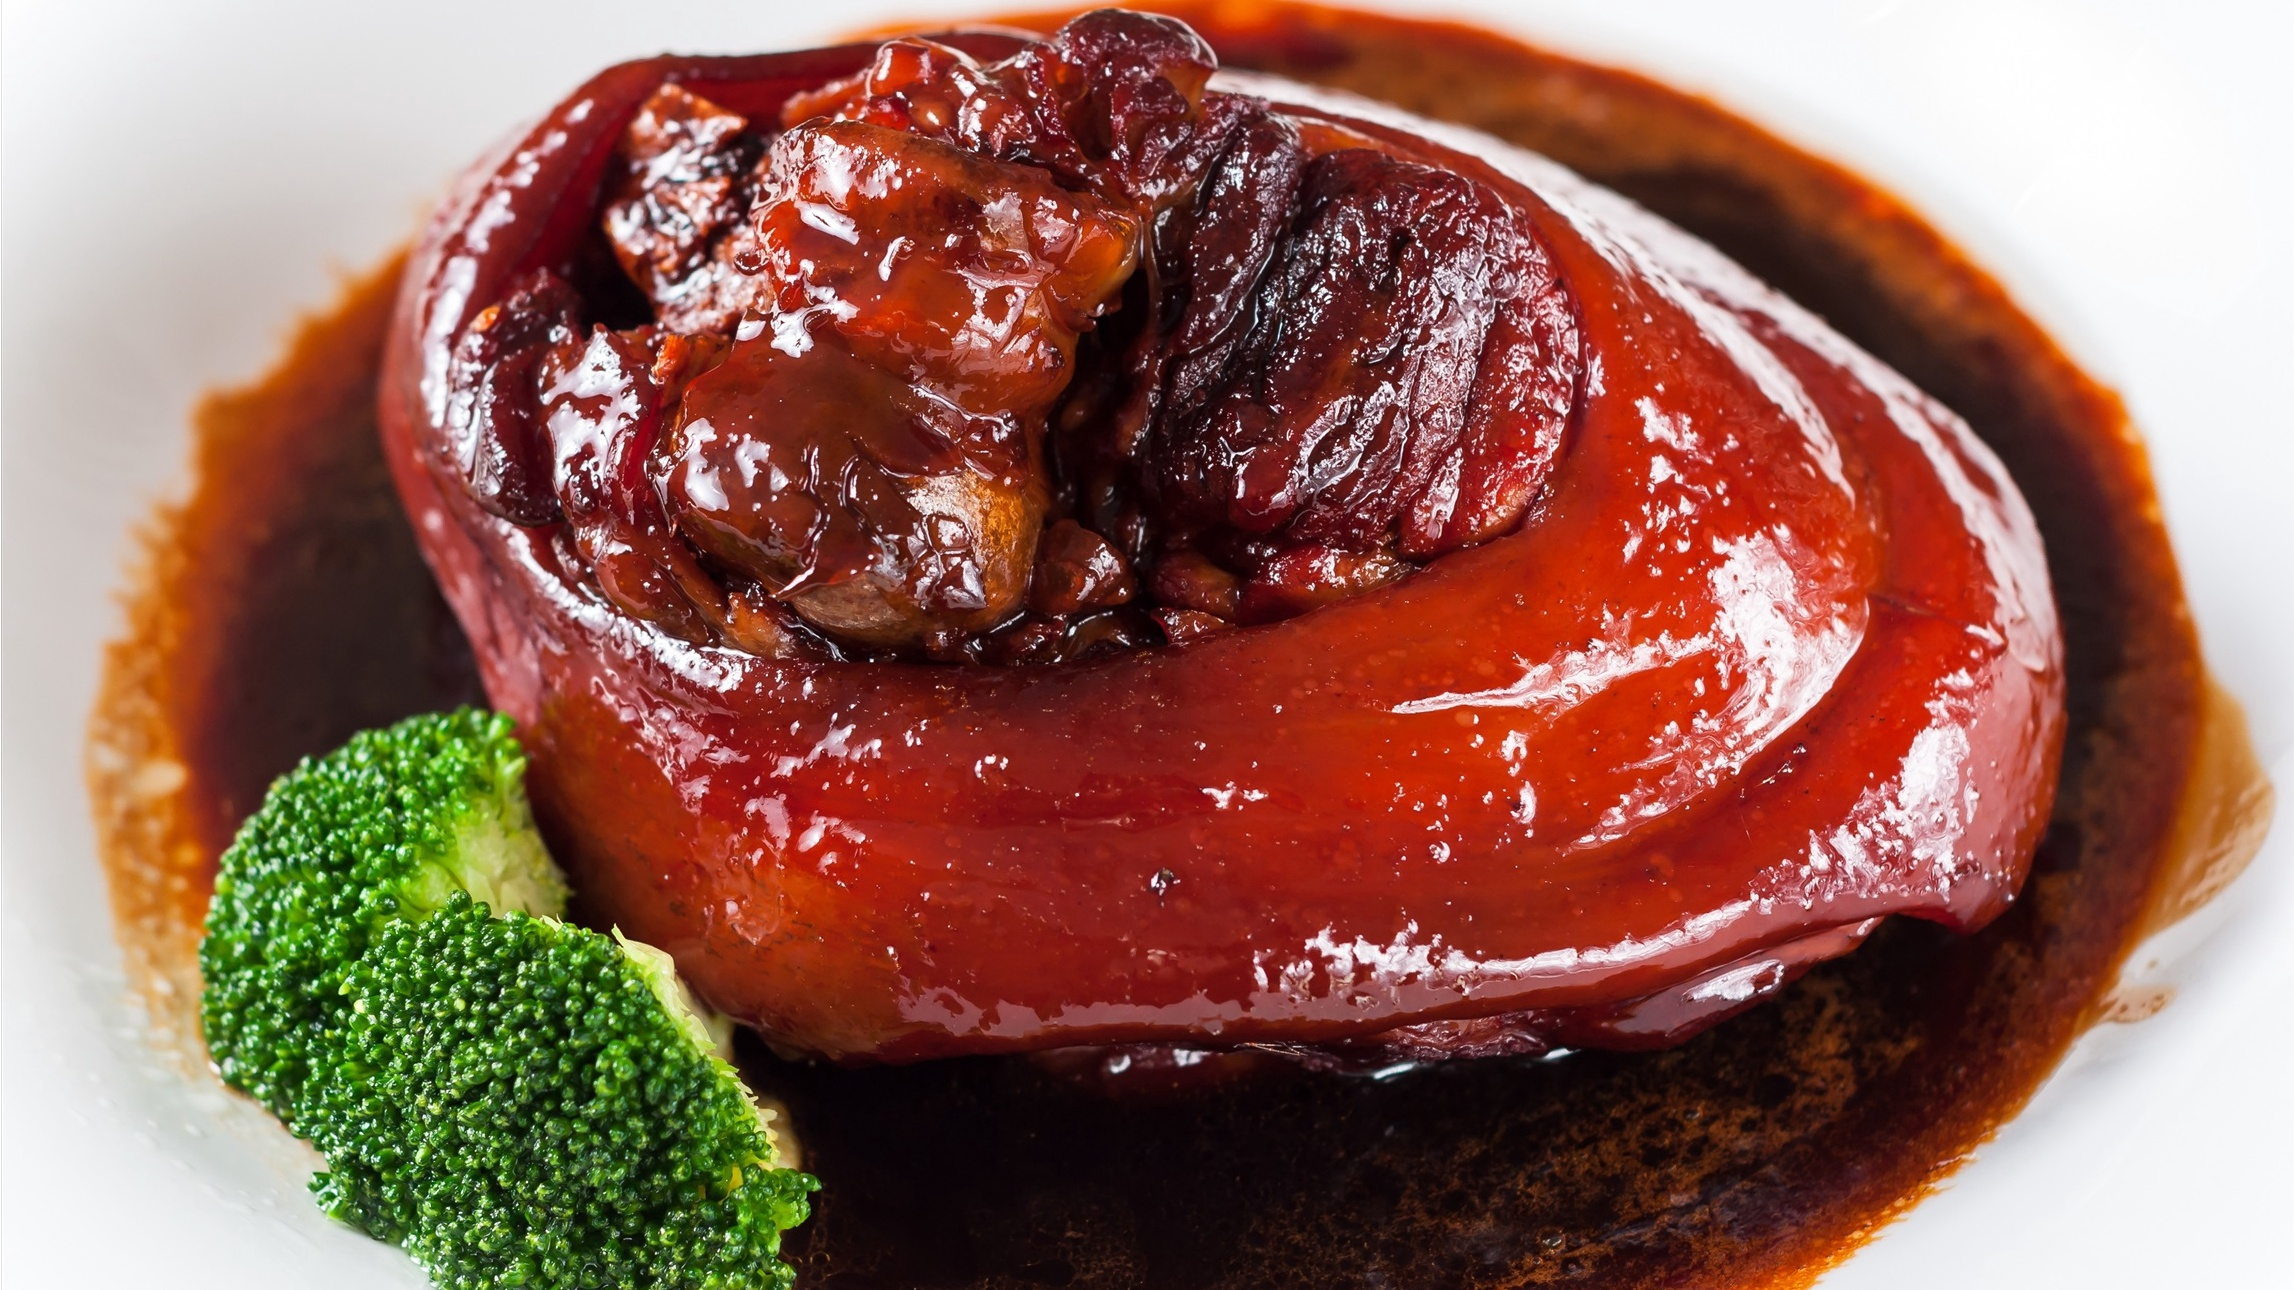 Menu for Spring Festival Eve: Red braised pork belly